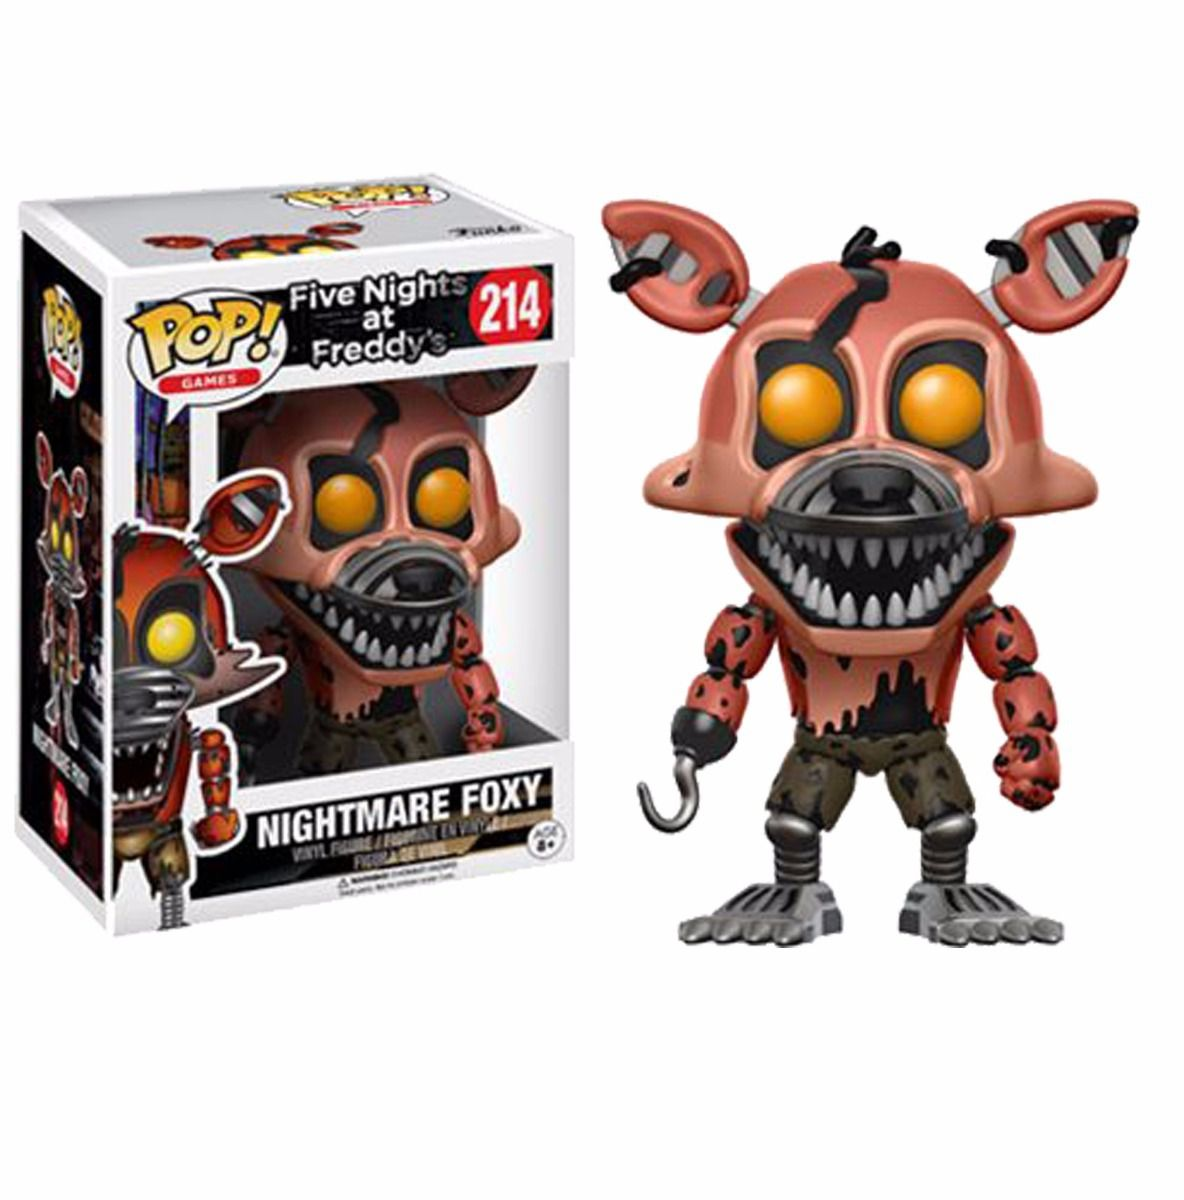 Funko Pop! Nightmare Fox: Five Nights at Freddy's #214 - Funko